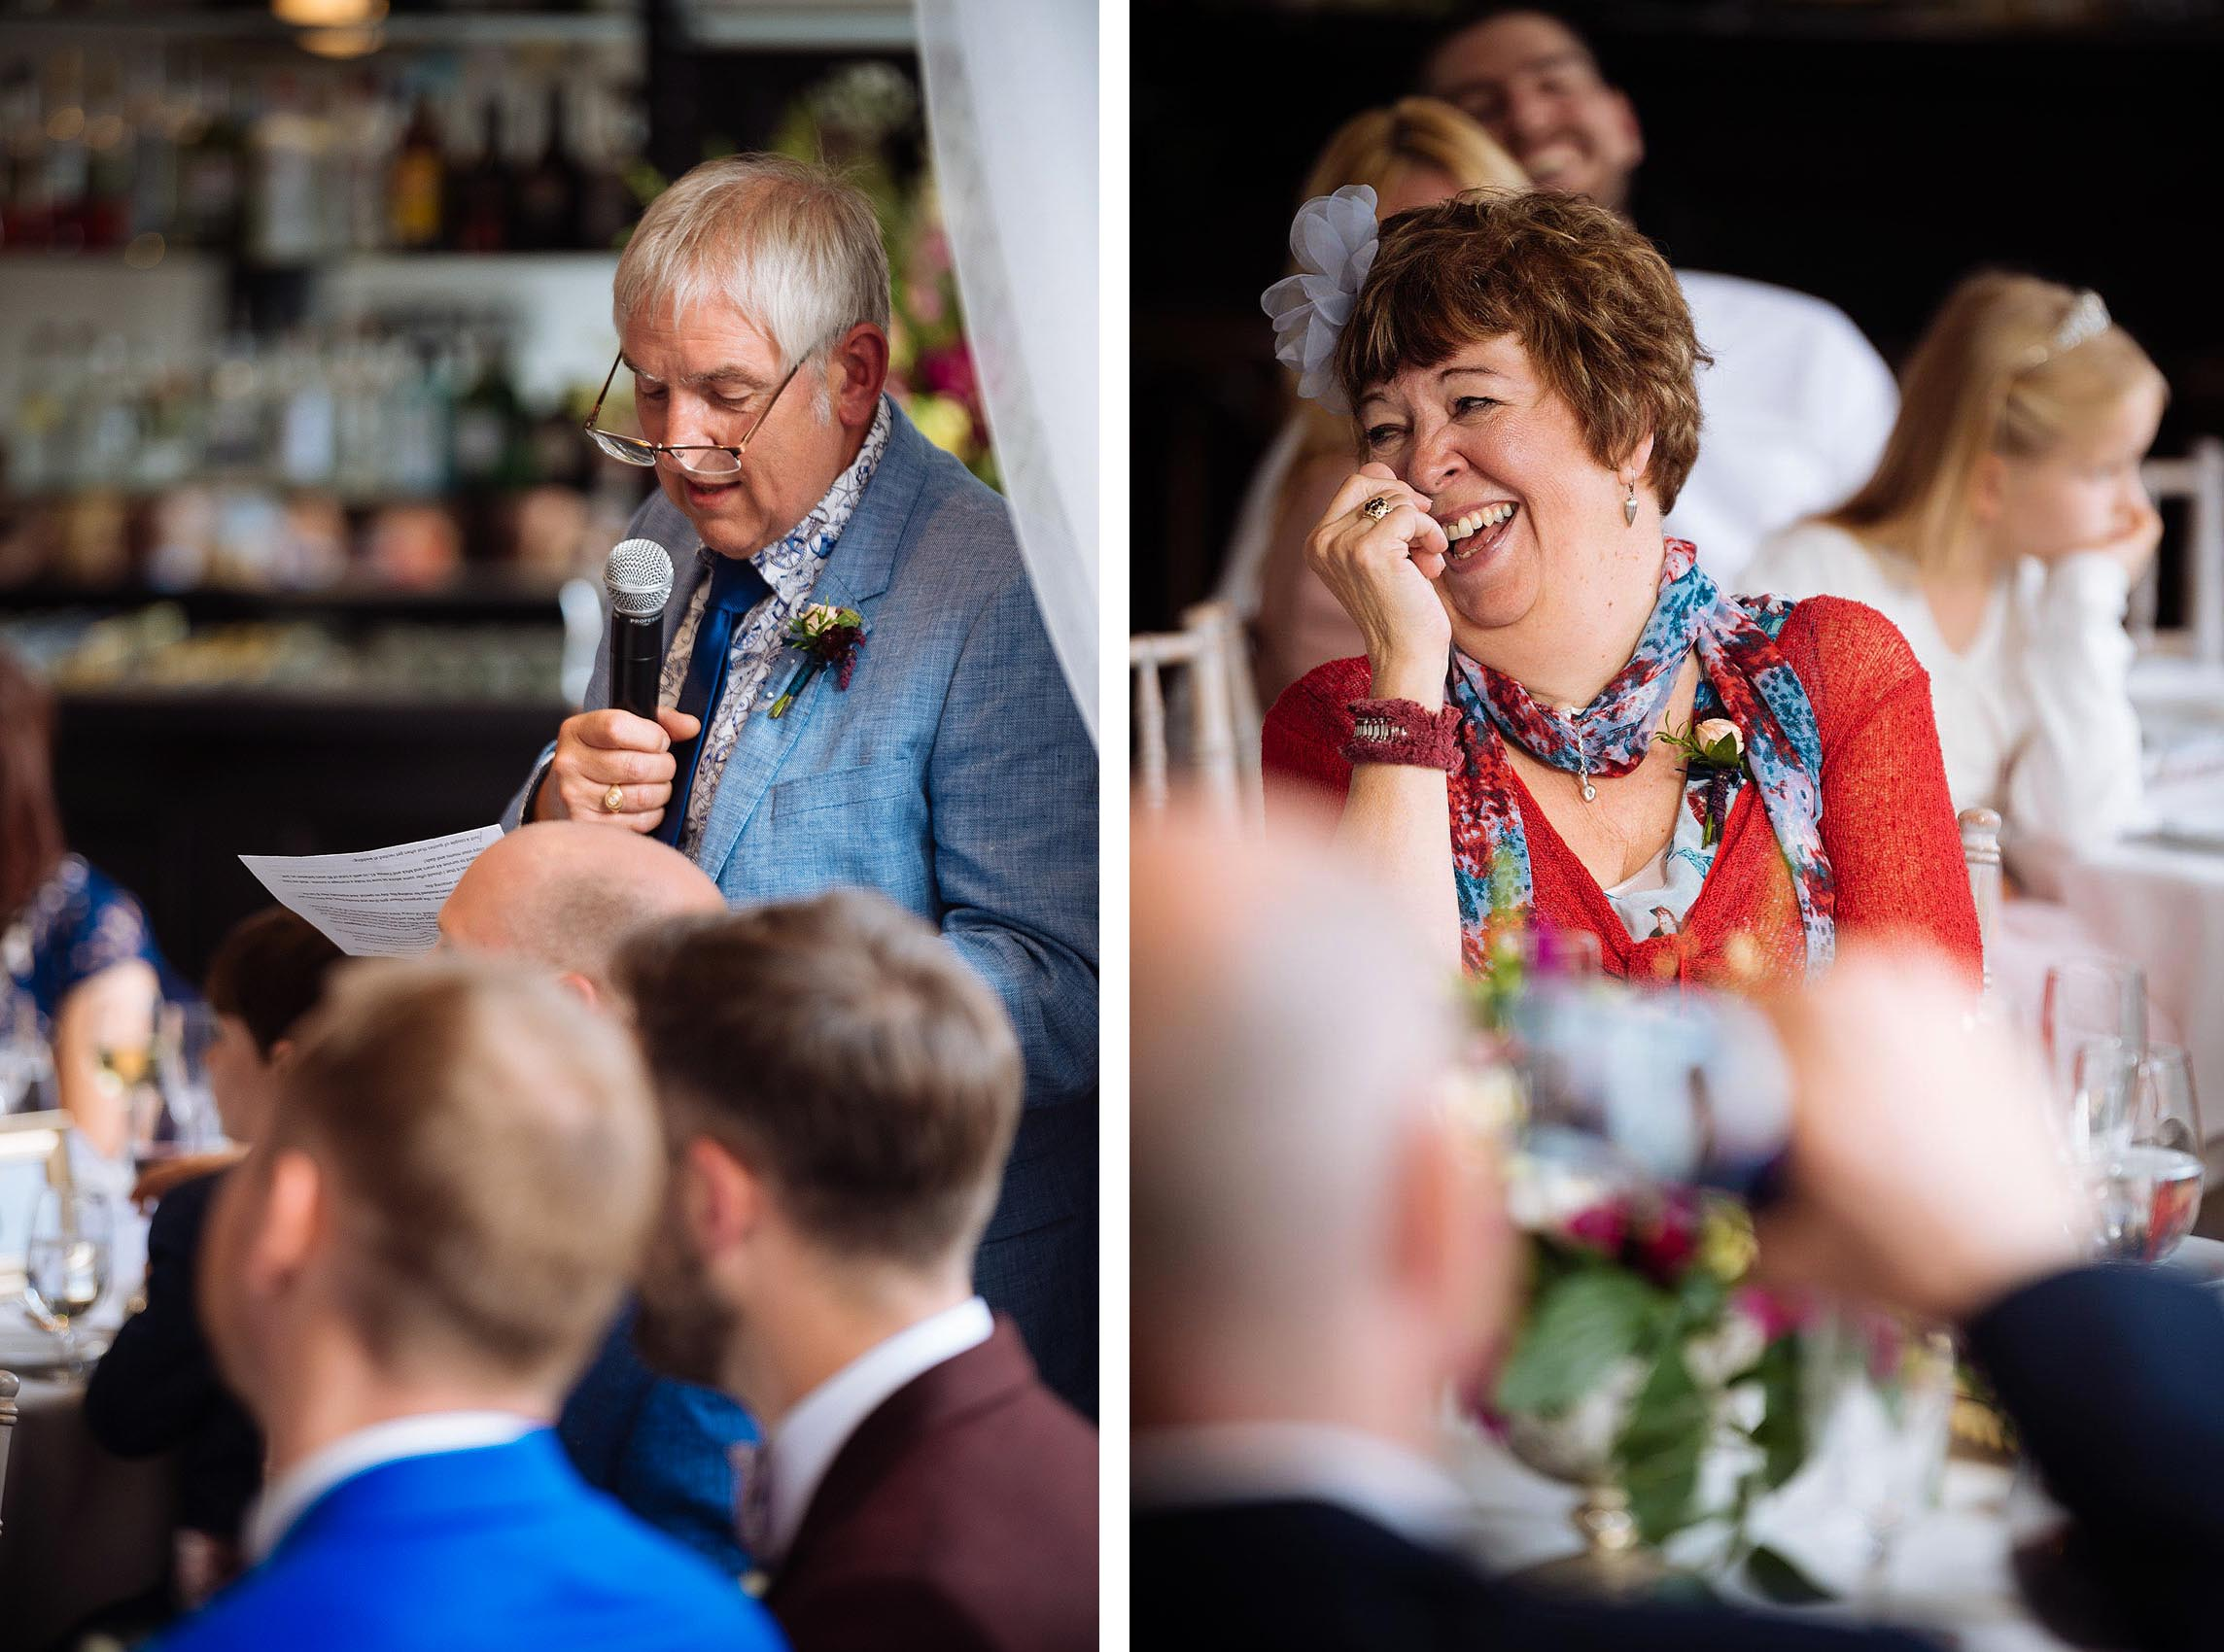 wedding-speeches-father-emotion-fallon-byrne-dublin-ireland-22